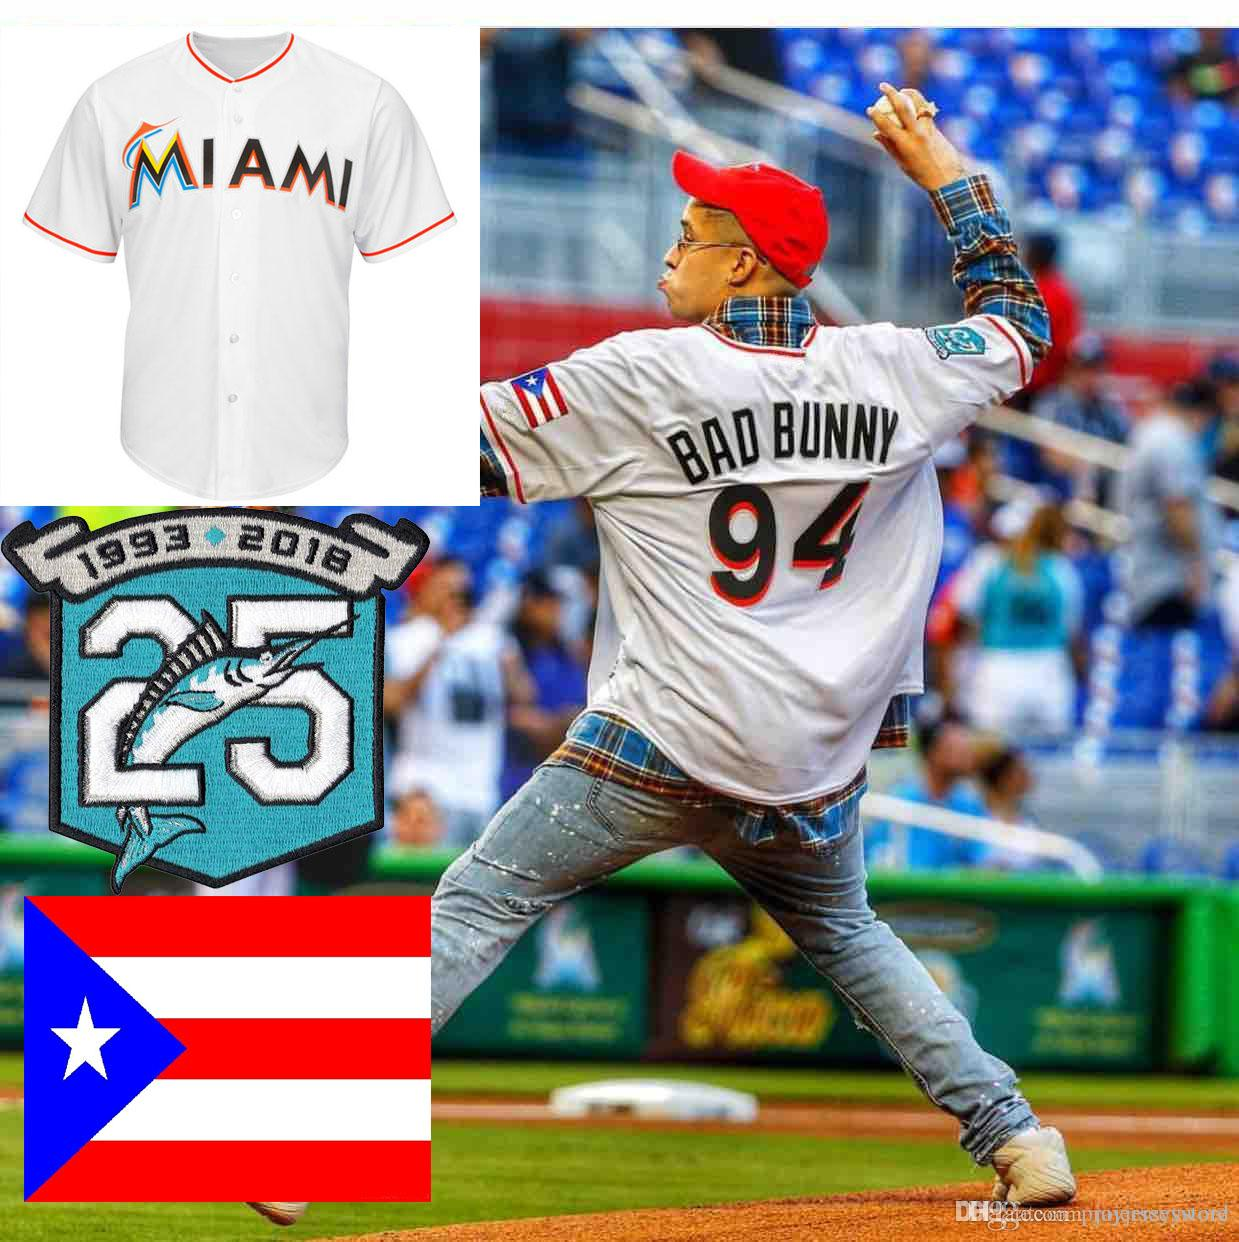 brand new 014cf 63120 Mens Maimi 94 Bad Bunny Big & Tall Marlins Jersey Size XS-6XL With Puerto  Rico Flag & Marlins 25th Anniversary Patch Baseball Jerseys